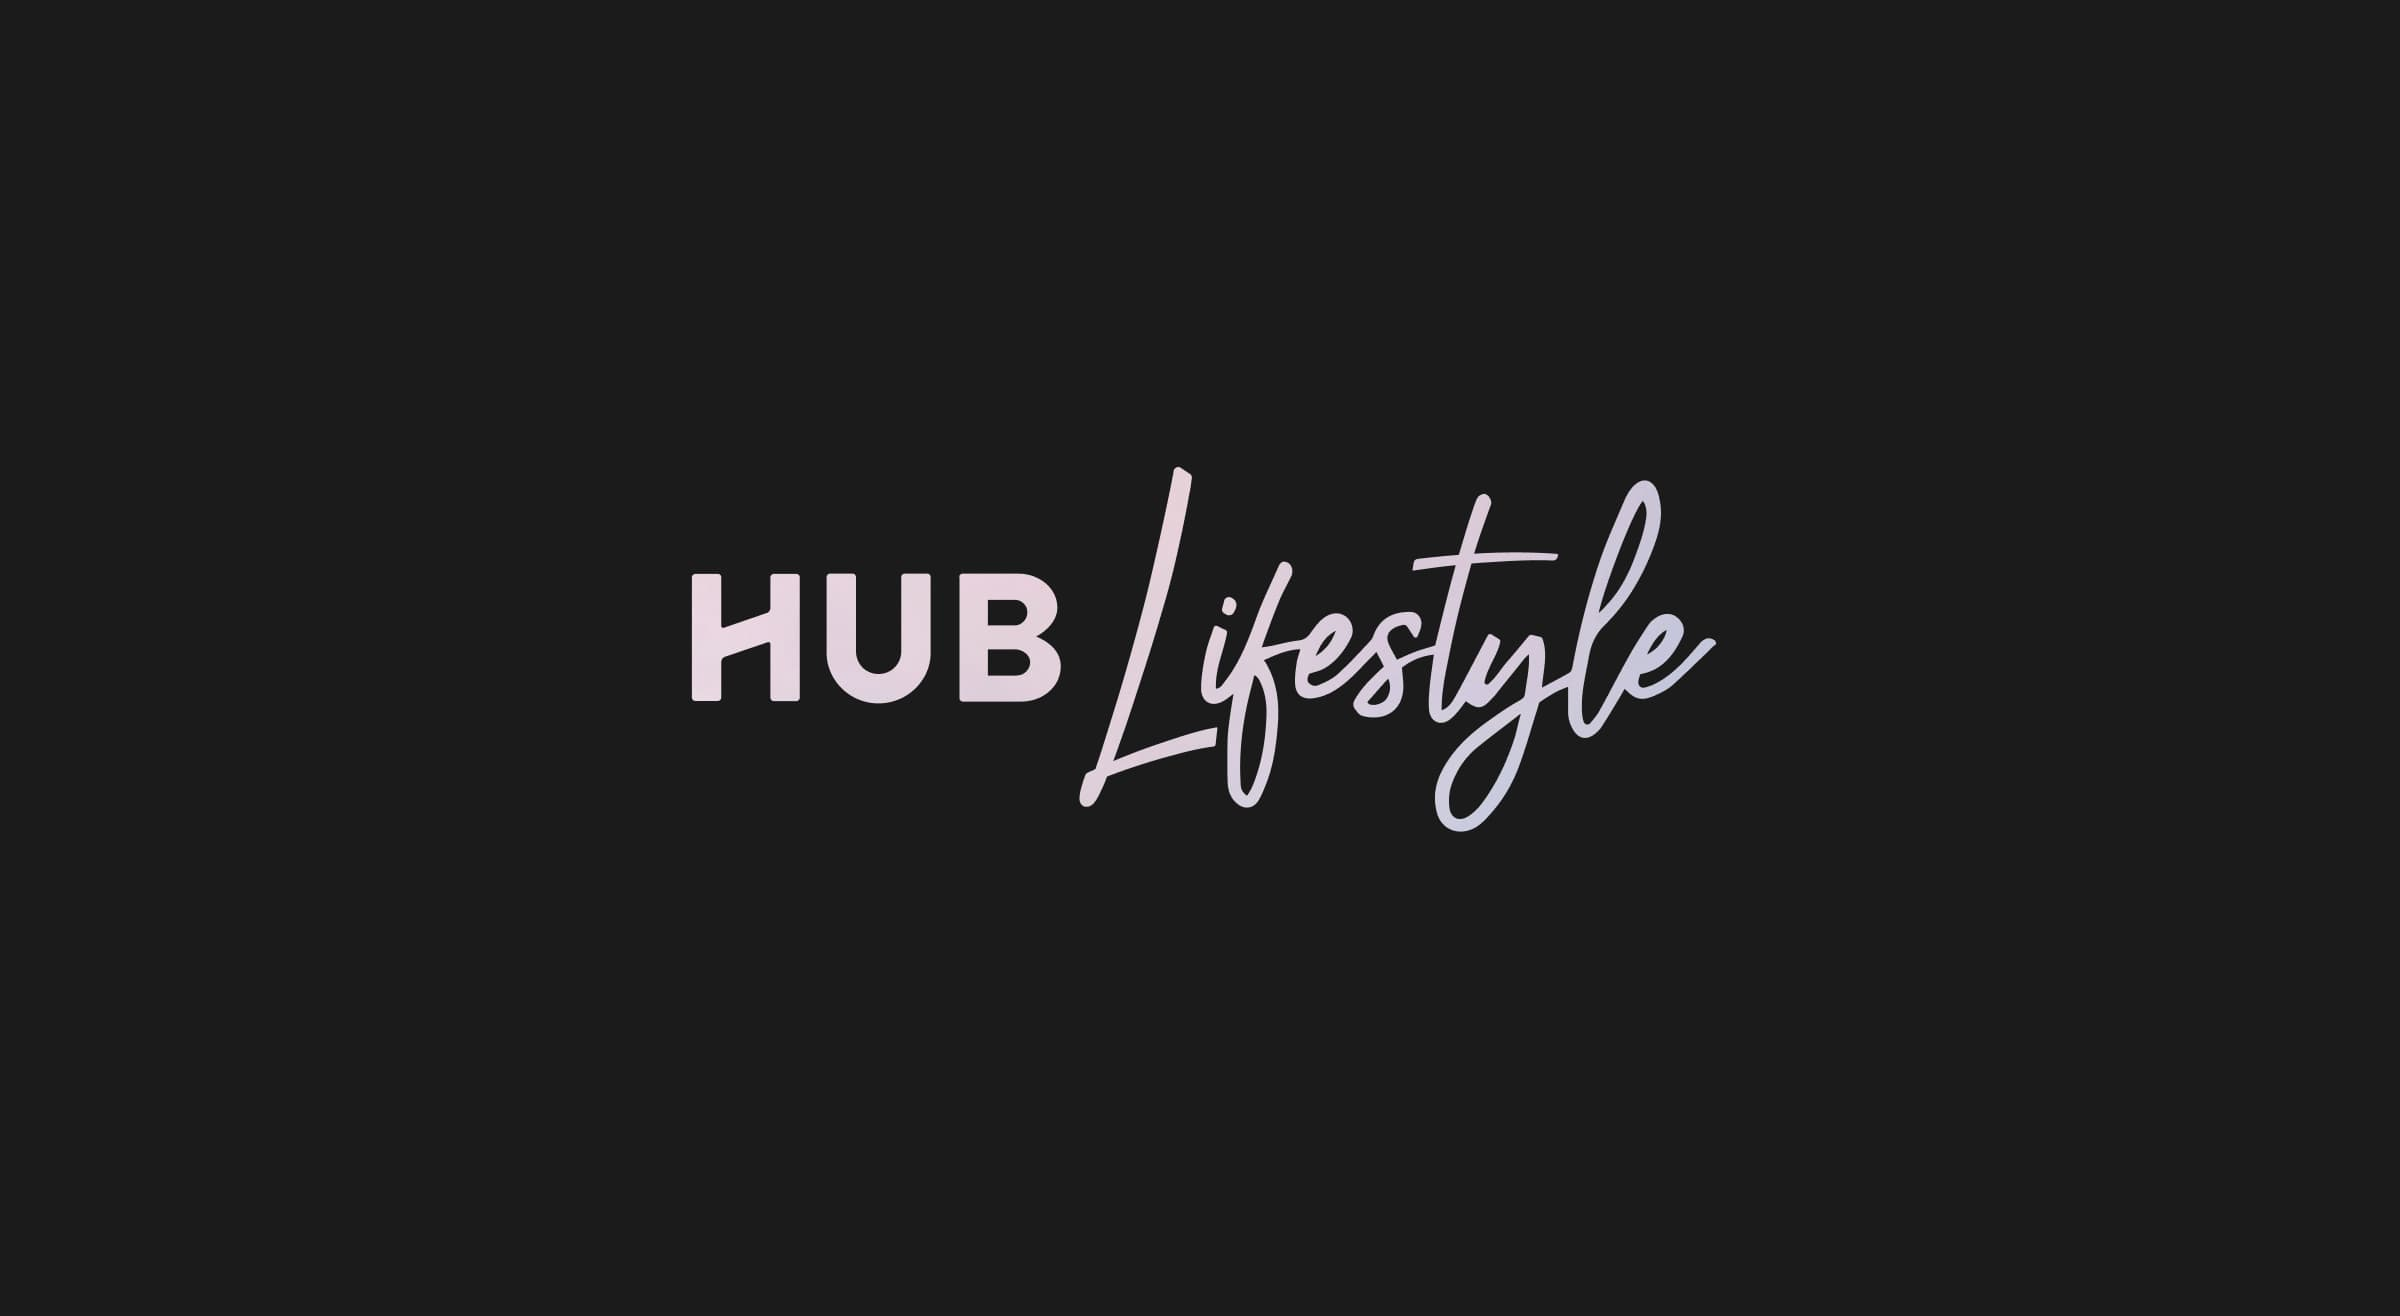 An image of the new Hub Lifestyle logo.